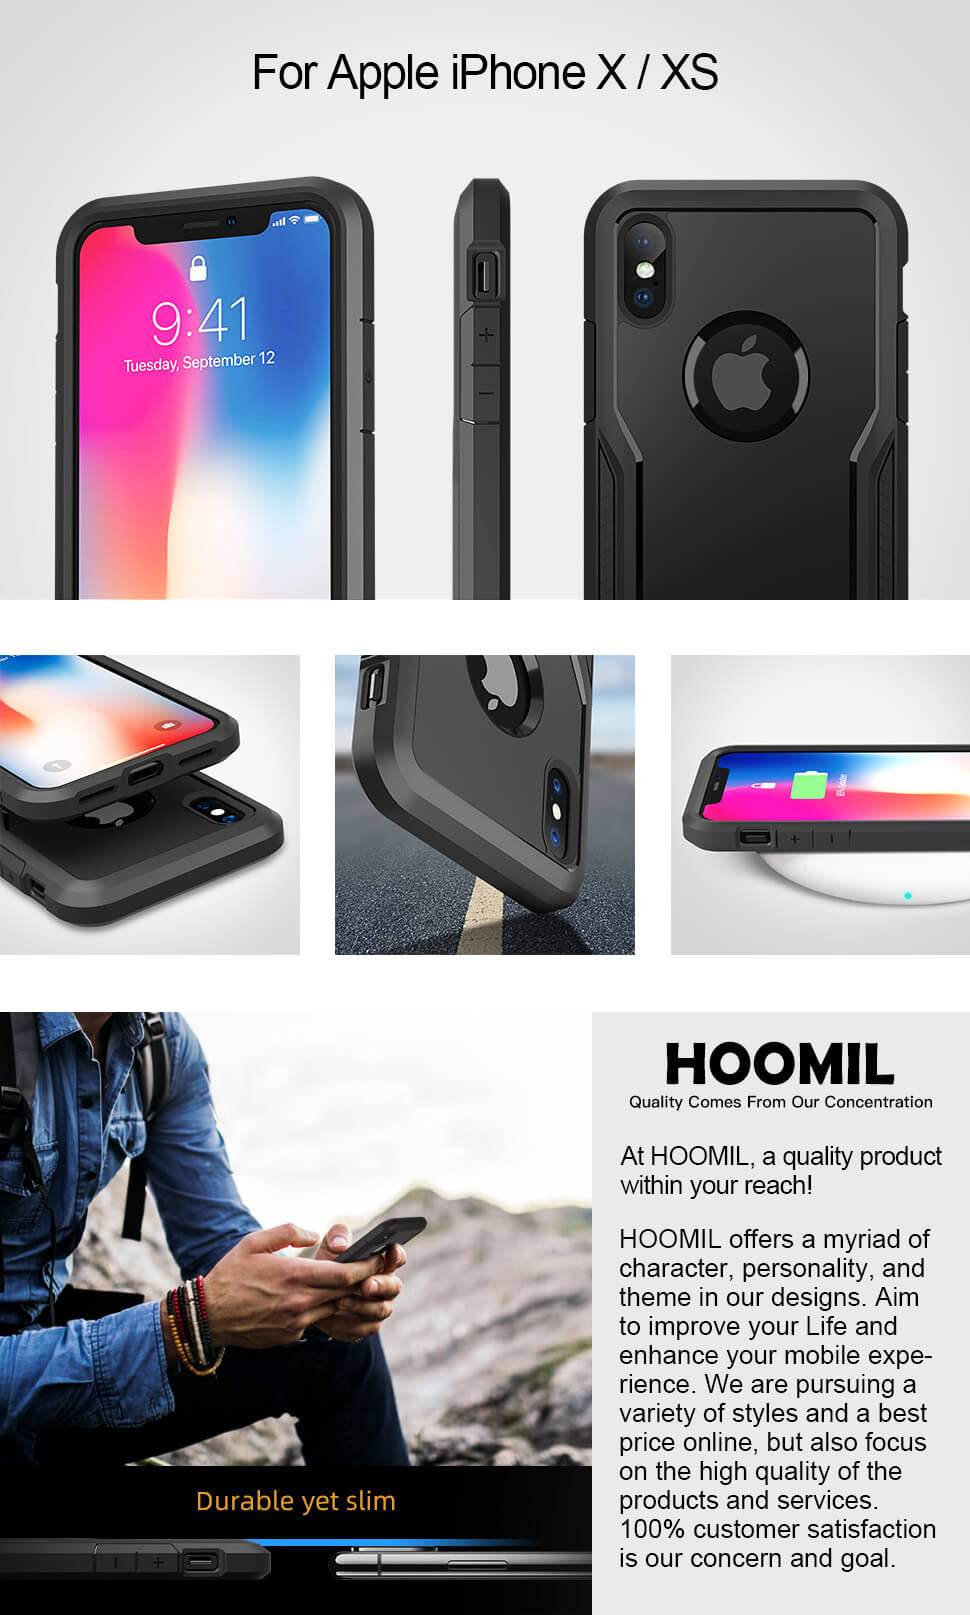 HOOMIL Compatible with iPhone X Case, iPhone XS Case, Shock Absorption Phone Cover for Apple iPhone X/XS Smartphone (5.8 inches) - Black